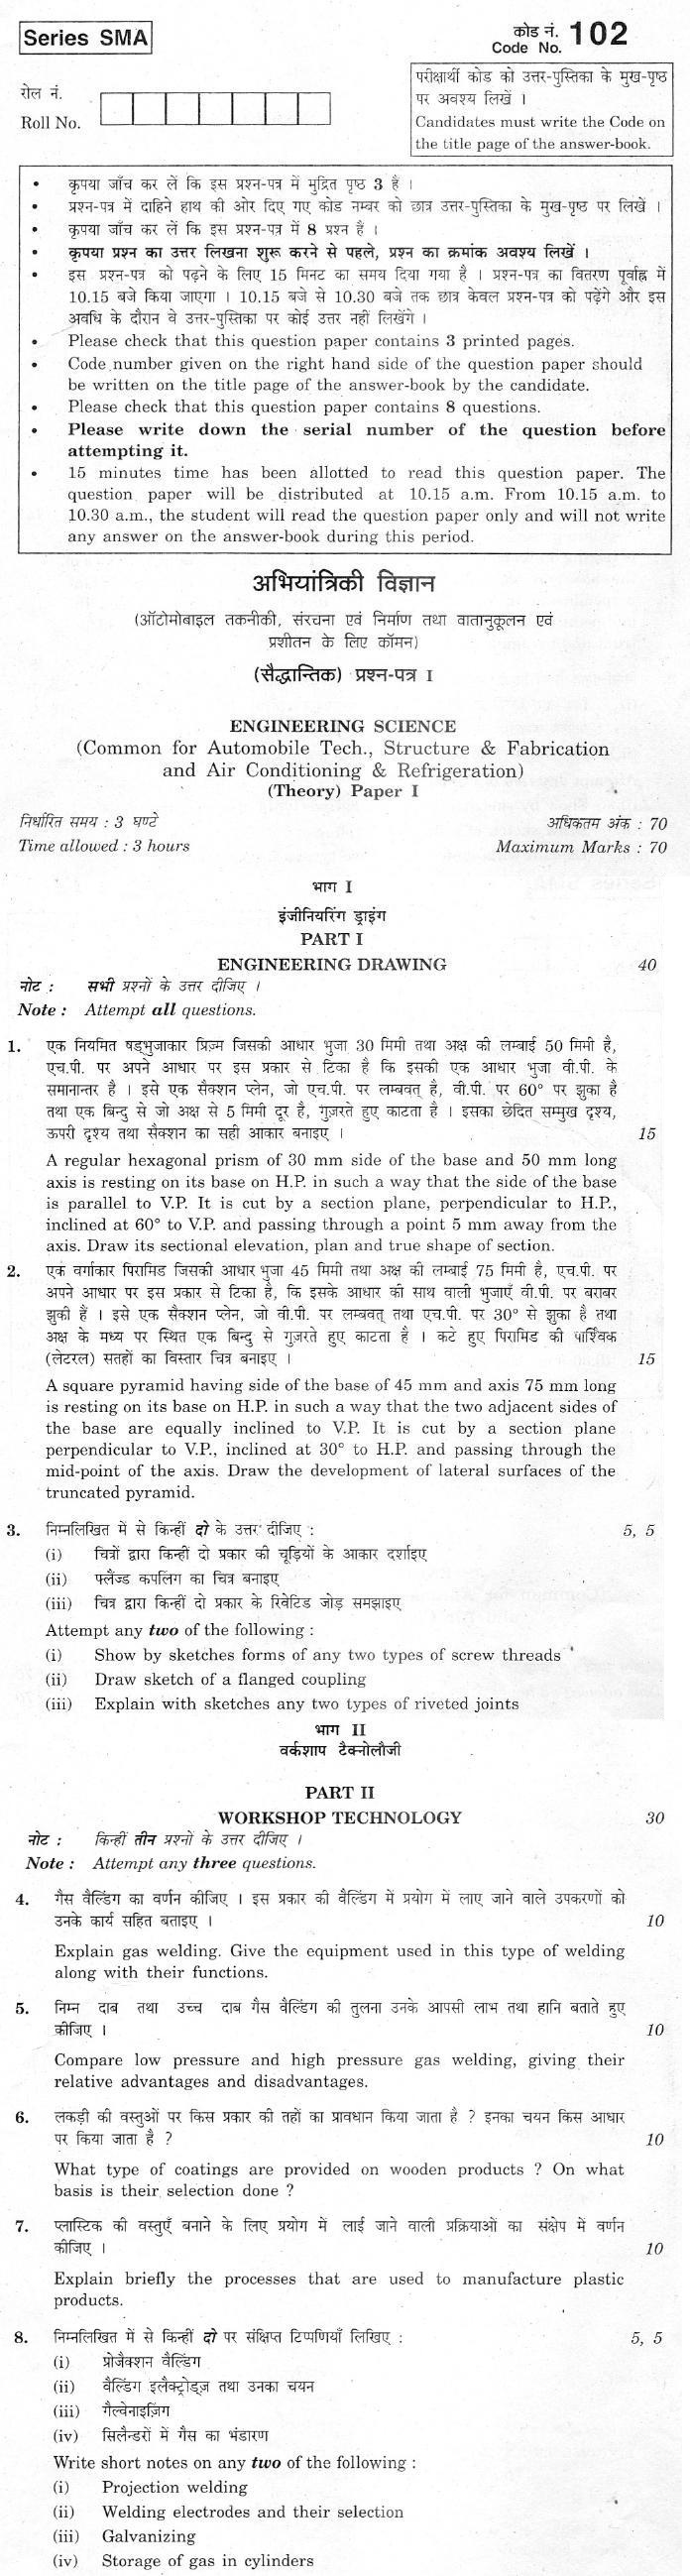 CBSE Class XII Previous Year Question Paper 2012 Engineering Science Paper I